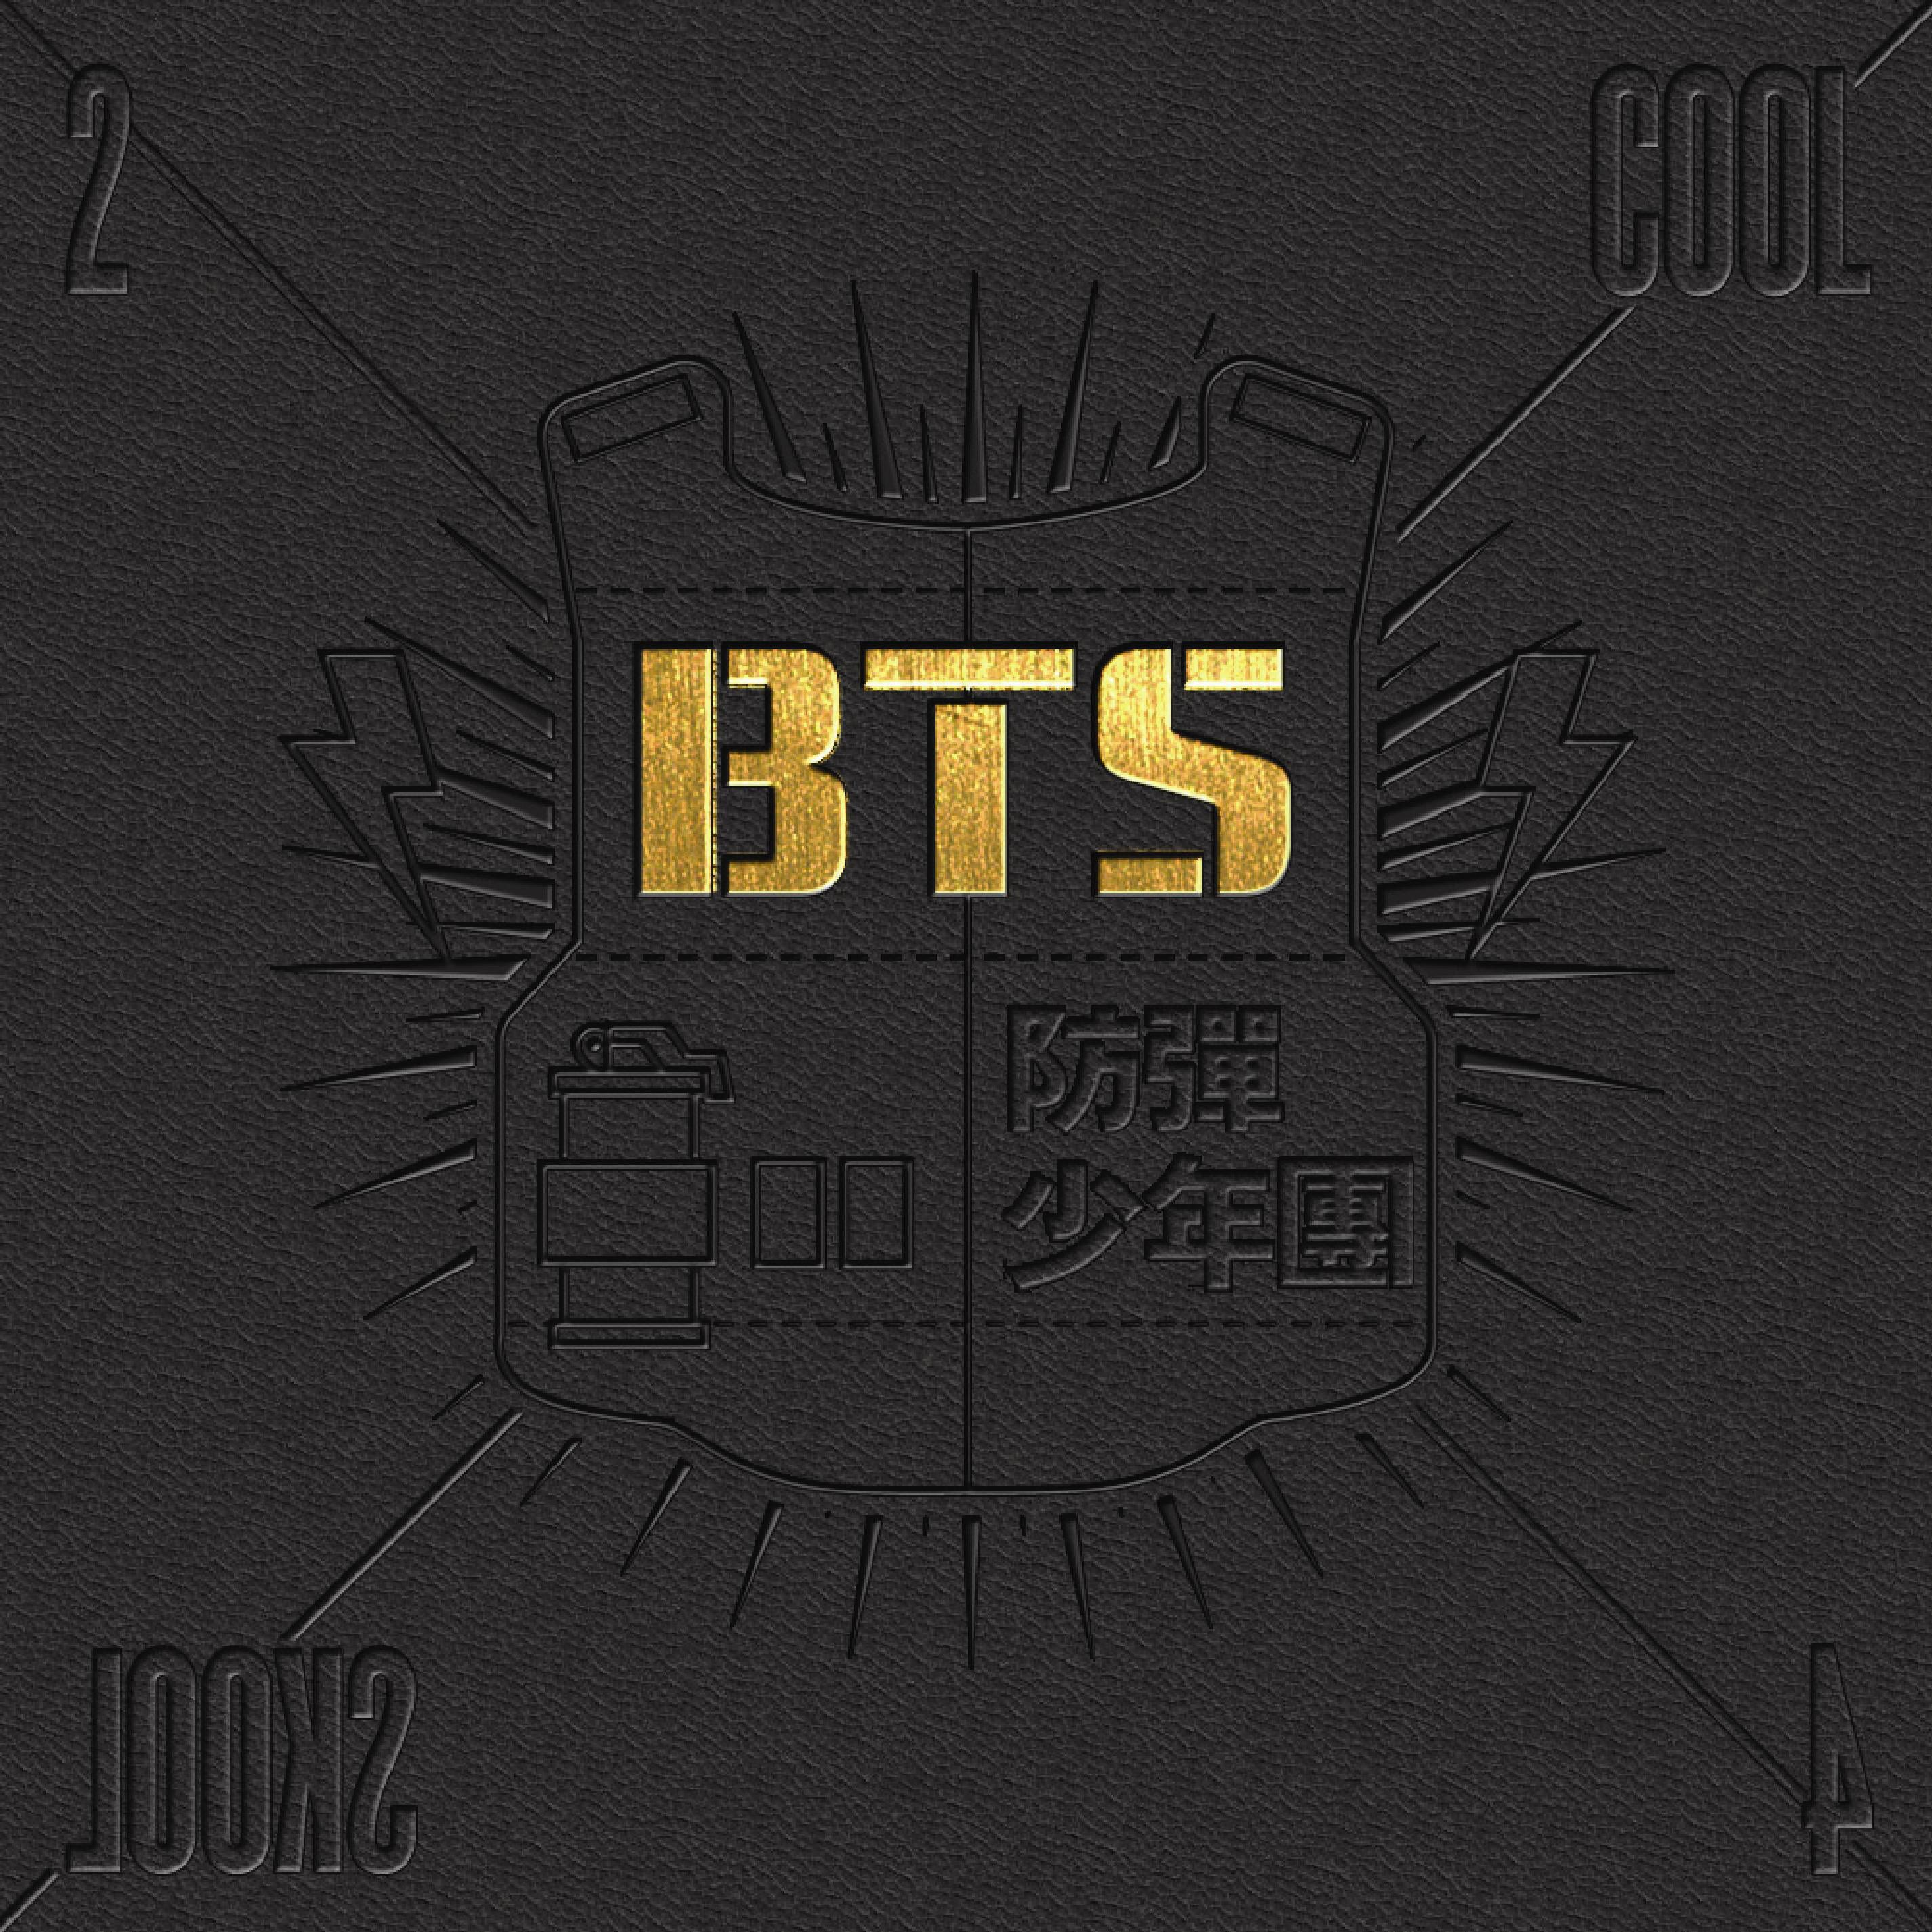 Bts Cd Covers Google Search Cd Covers Pinterest Cd